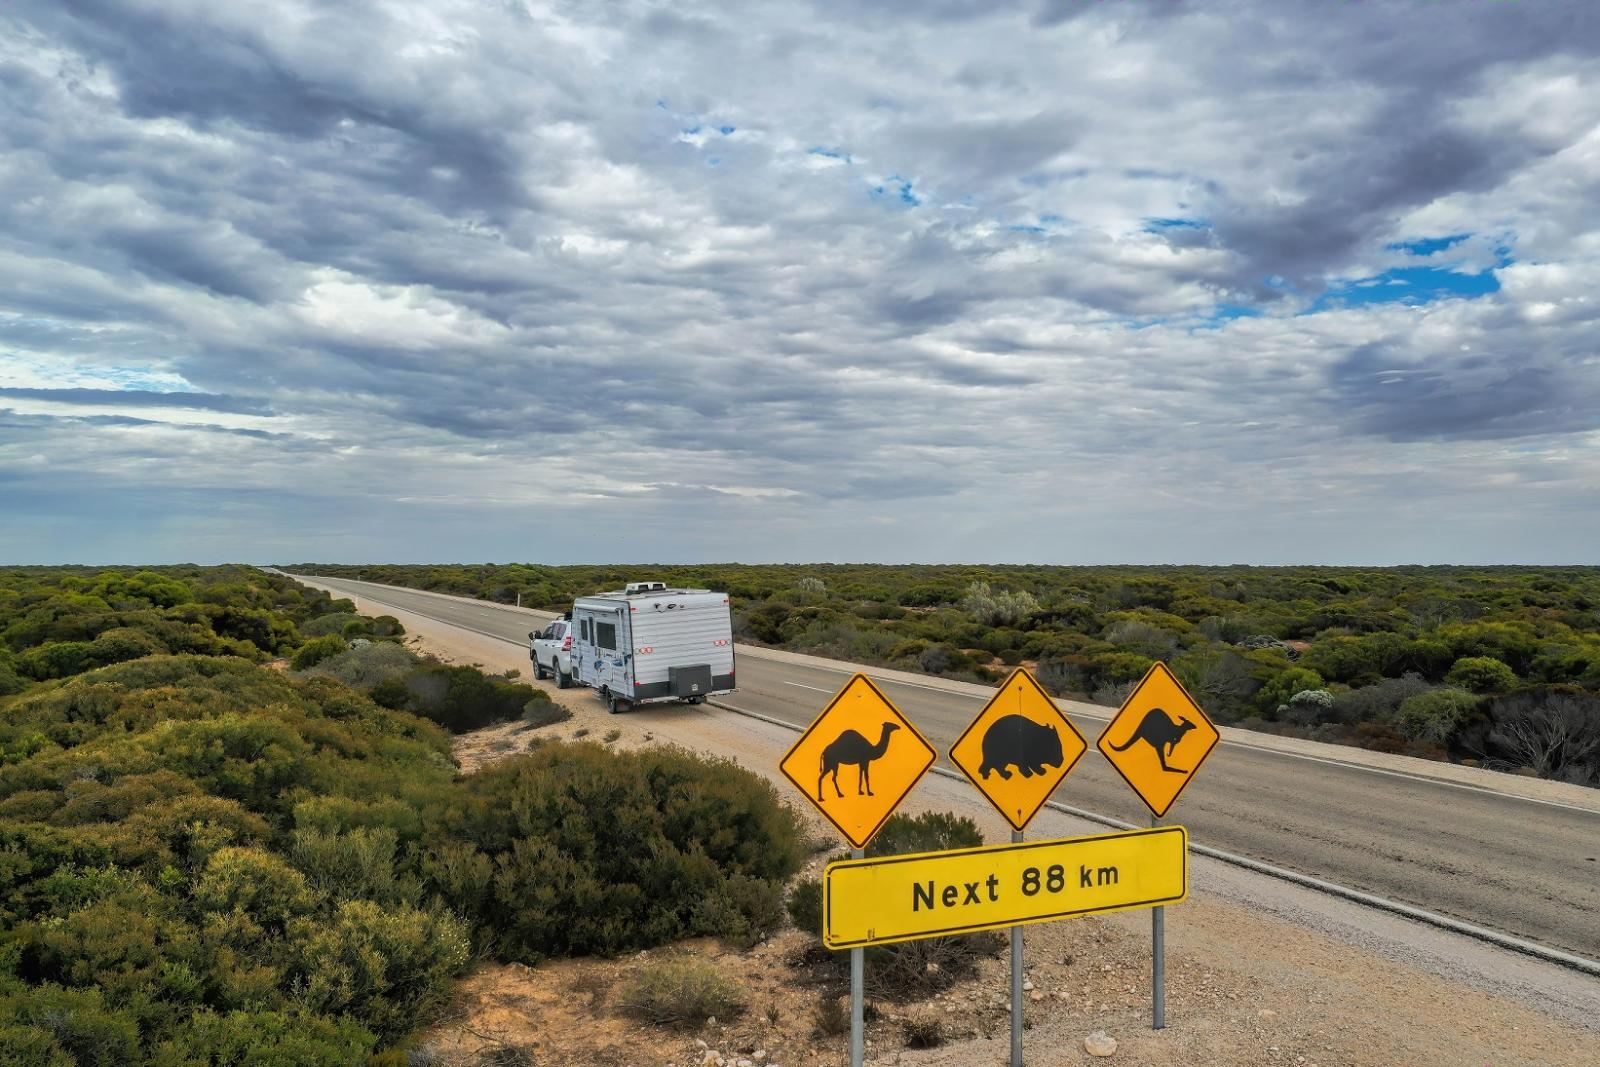 More Australians are interested in exploring their own backyard with a caravan, thanks to the nation's successful handling of COVID-19